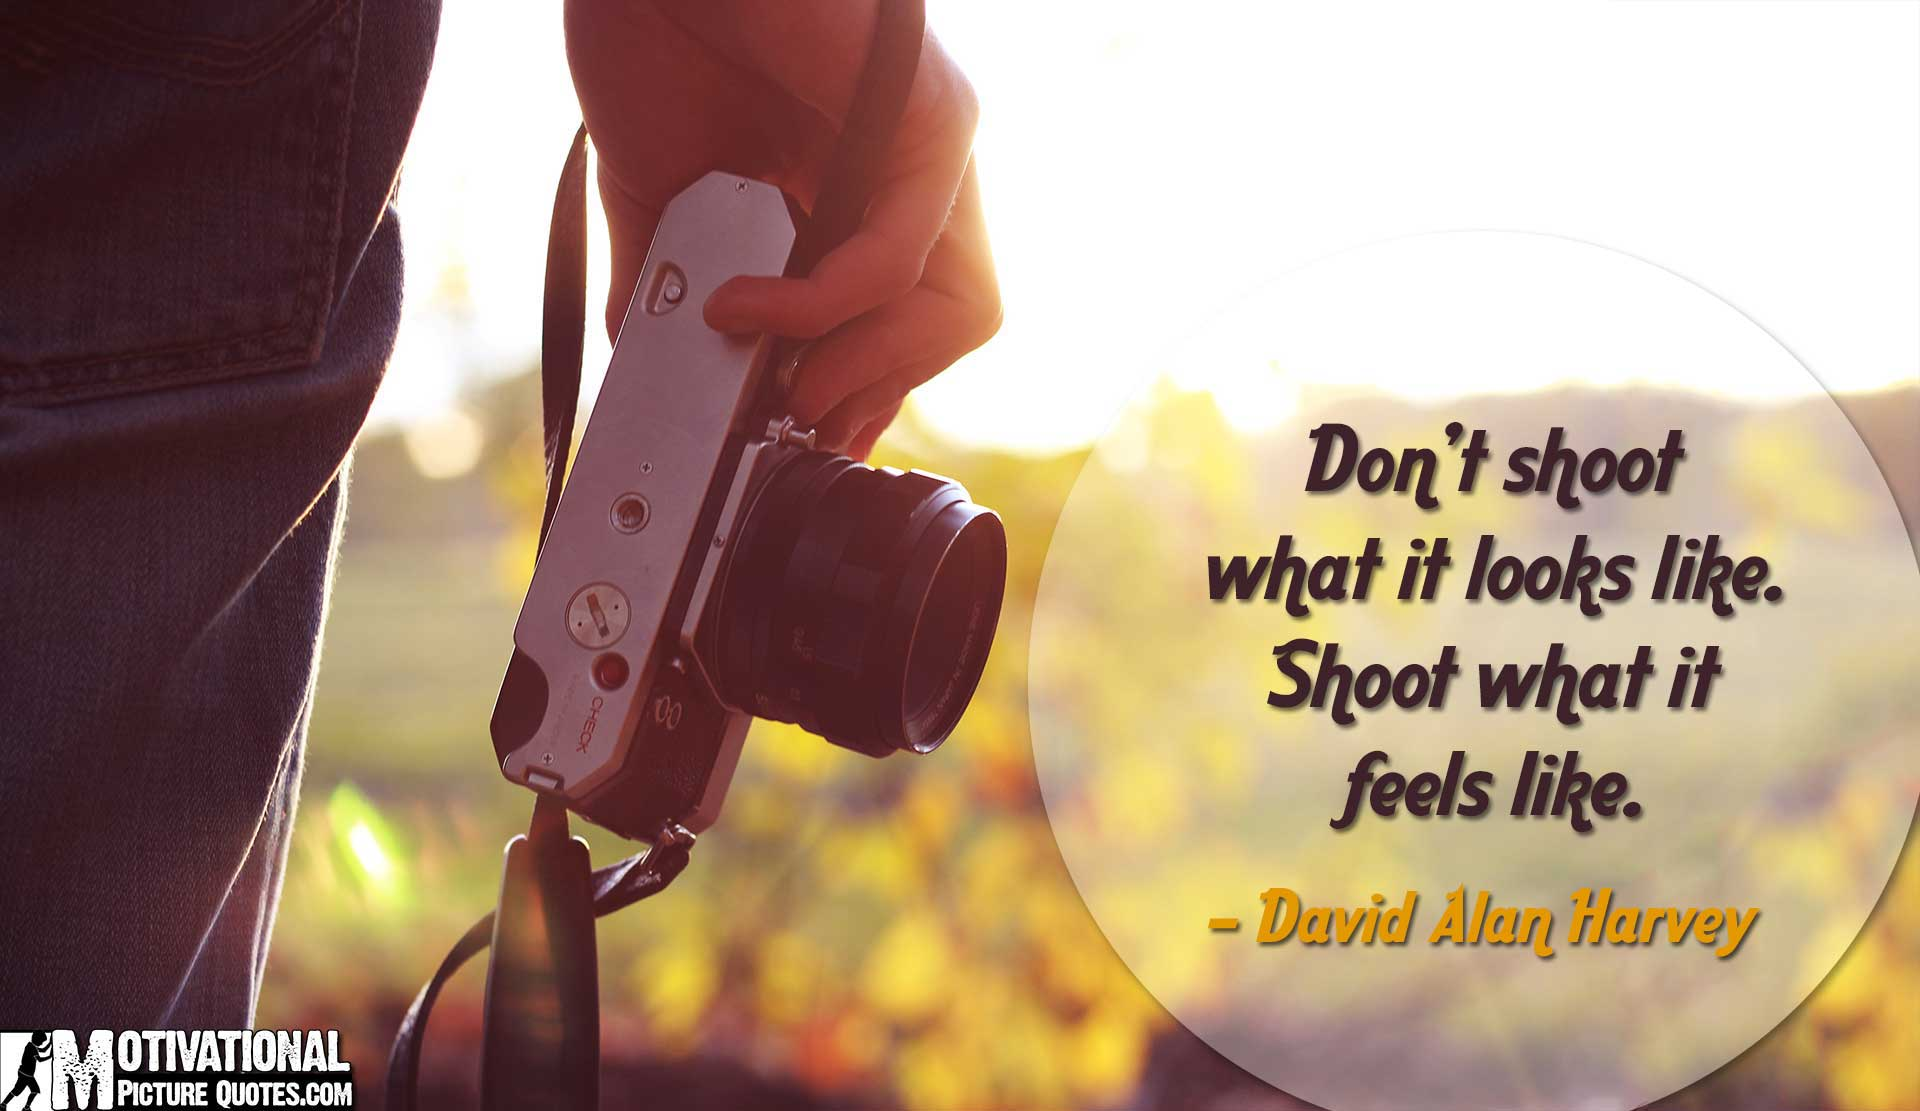 Inspirational Quotes Pictures Motivational Thoughts: 12+ Short Inspirational Photography Quotes